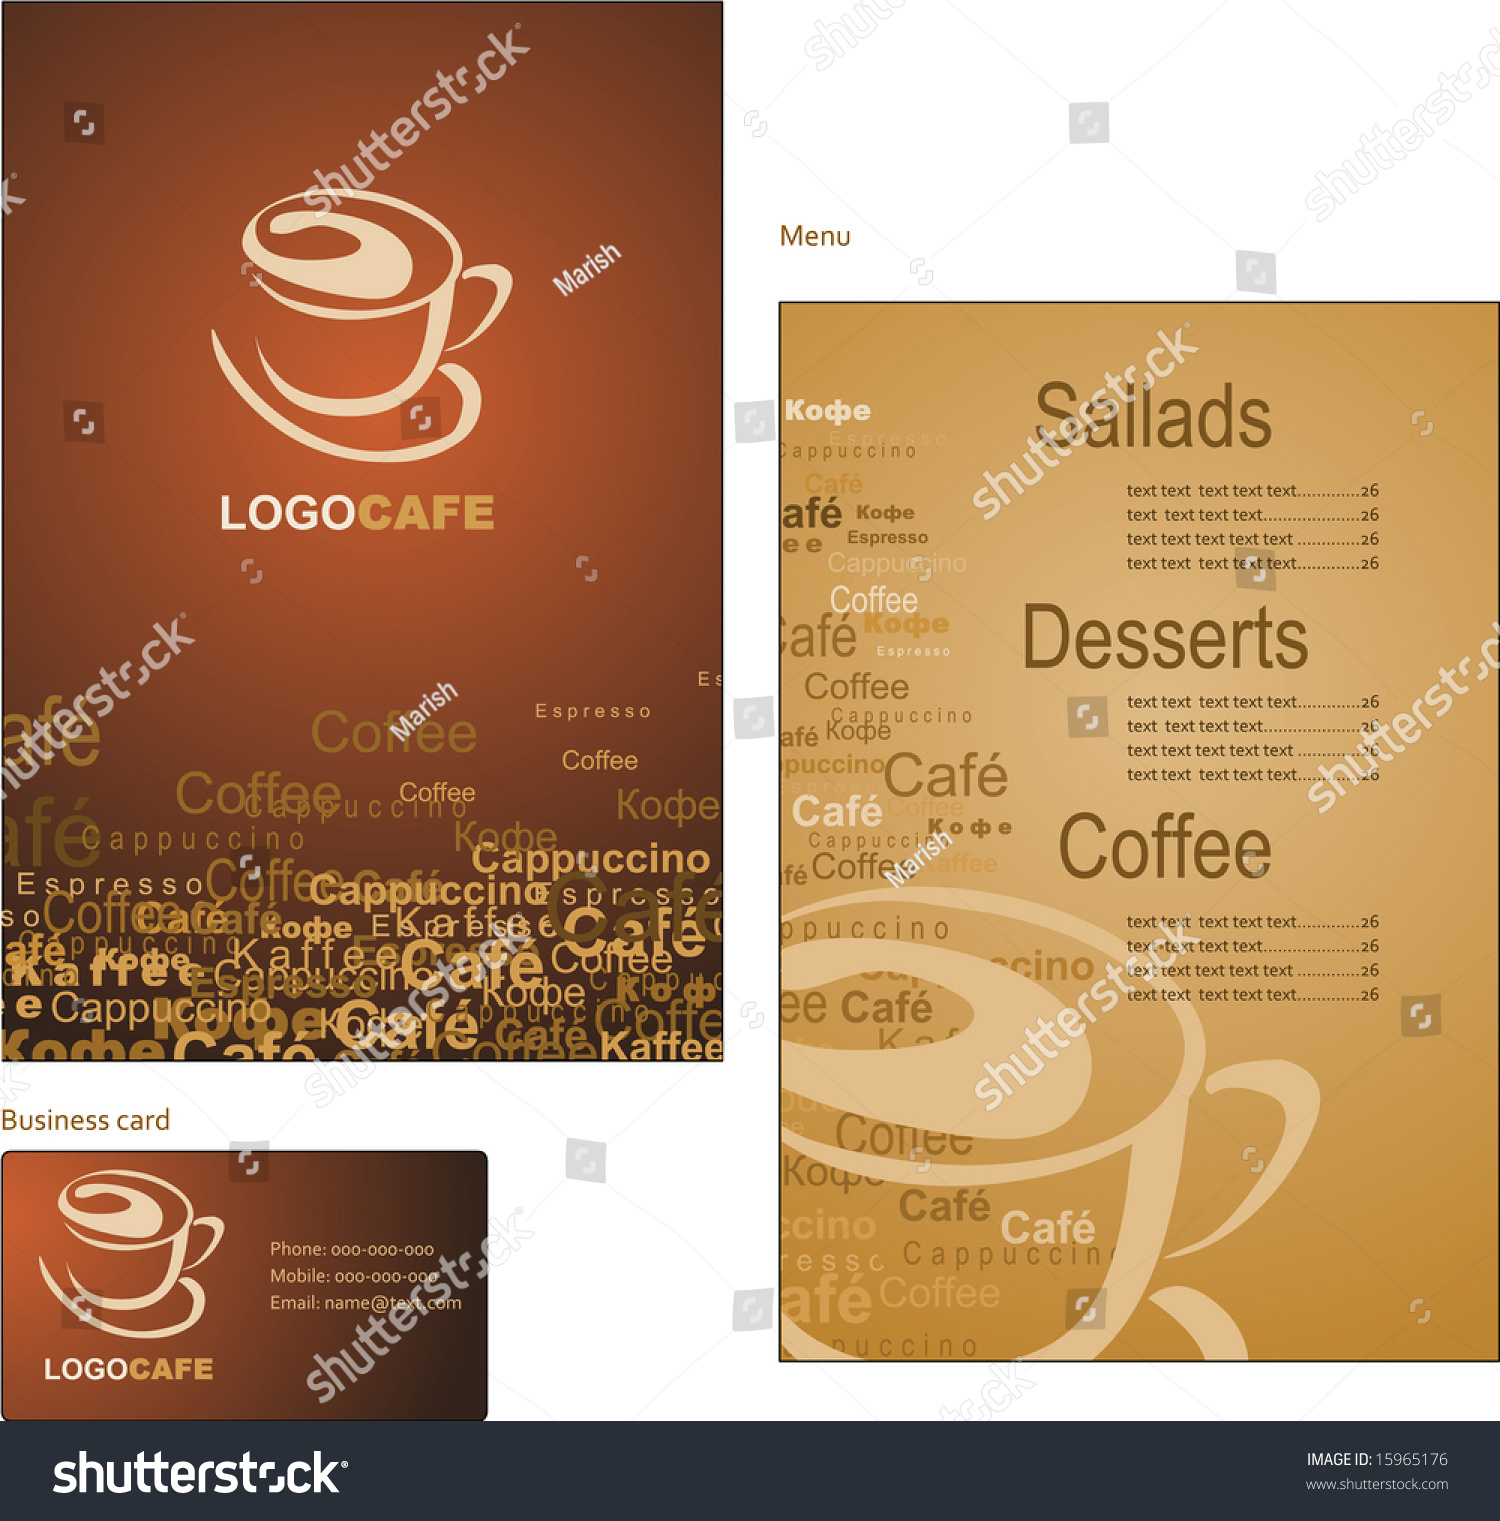 Stock Images RoyaltyFree Images Vectors Shutterstock - Coffee business card template free